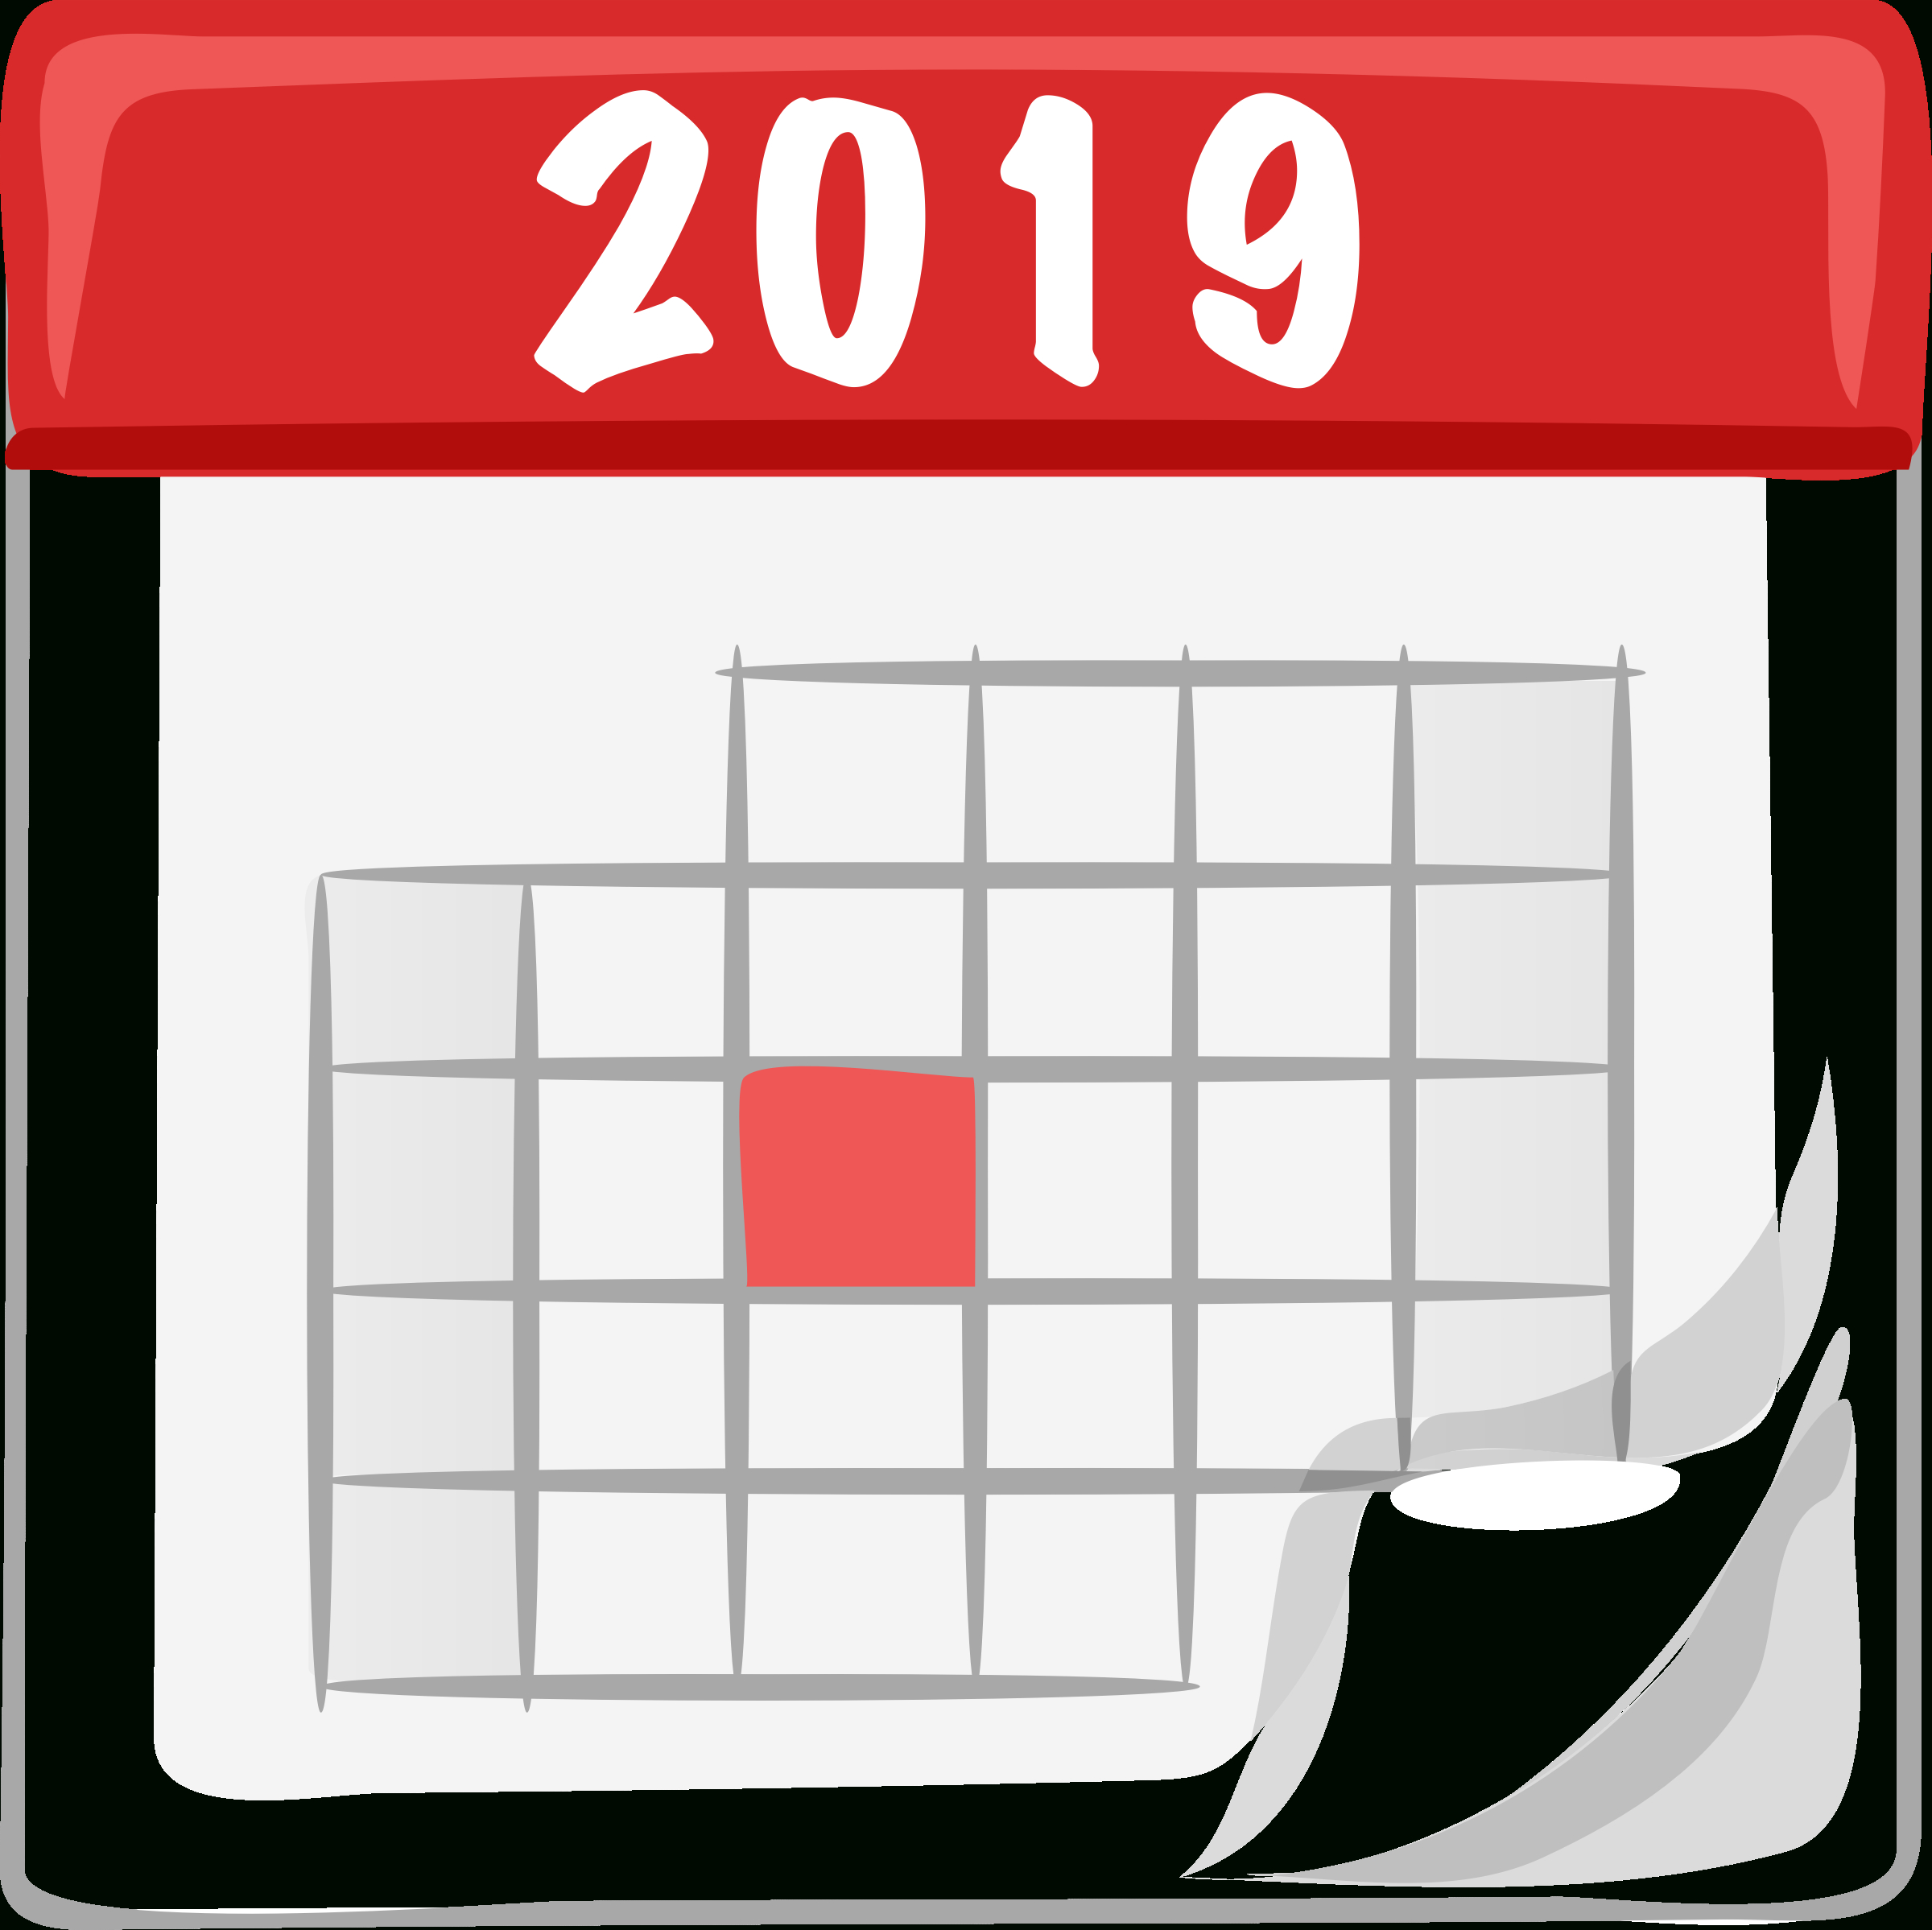 Calendar Of Marcellus/utica Events Now Thru Sept 2019 | | Marcellus Calendar 2019 Clipart